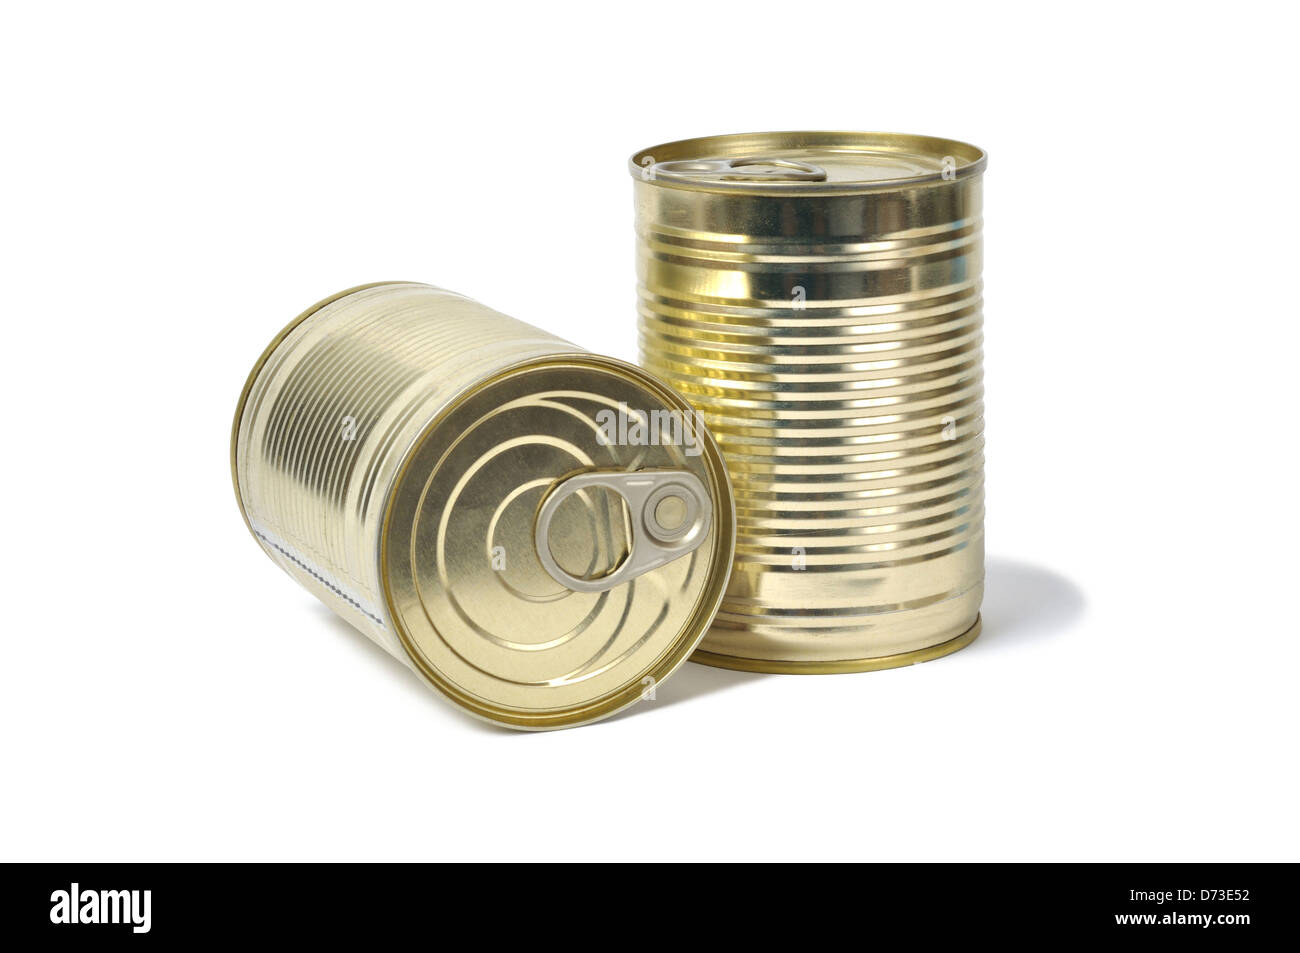 Tin Cans on White - Stock Image